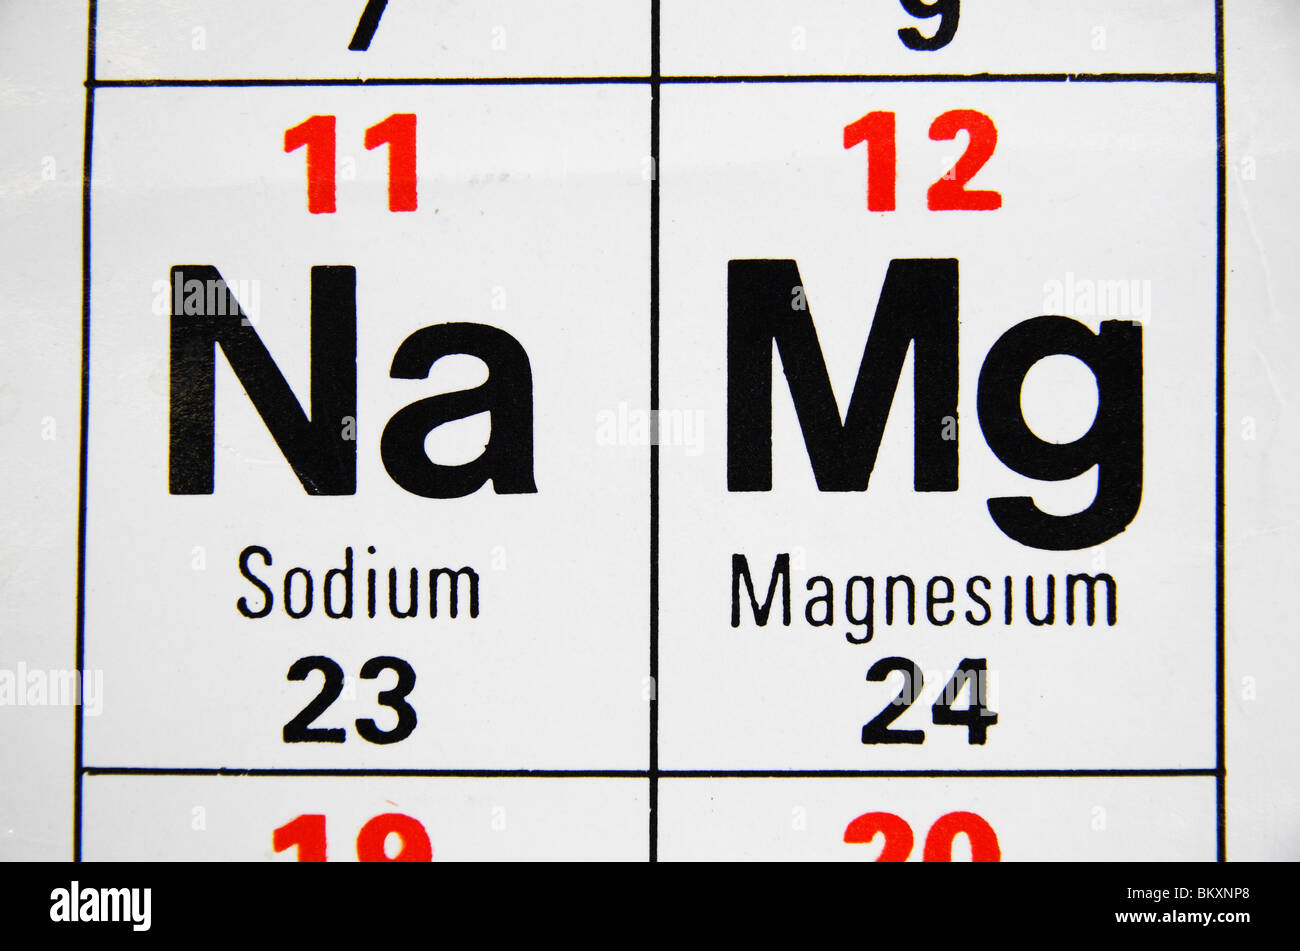 Close up view of a uk high school periodic table focusing on sodium close up view of a uk high school periodic table focusing on sodium na and magnesium mg urtaz Image collections